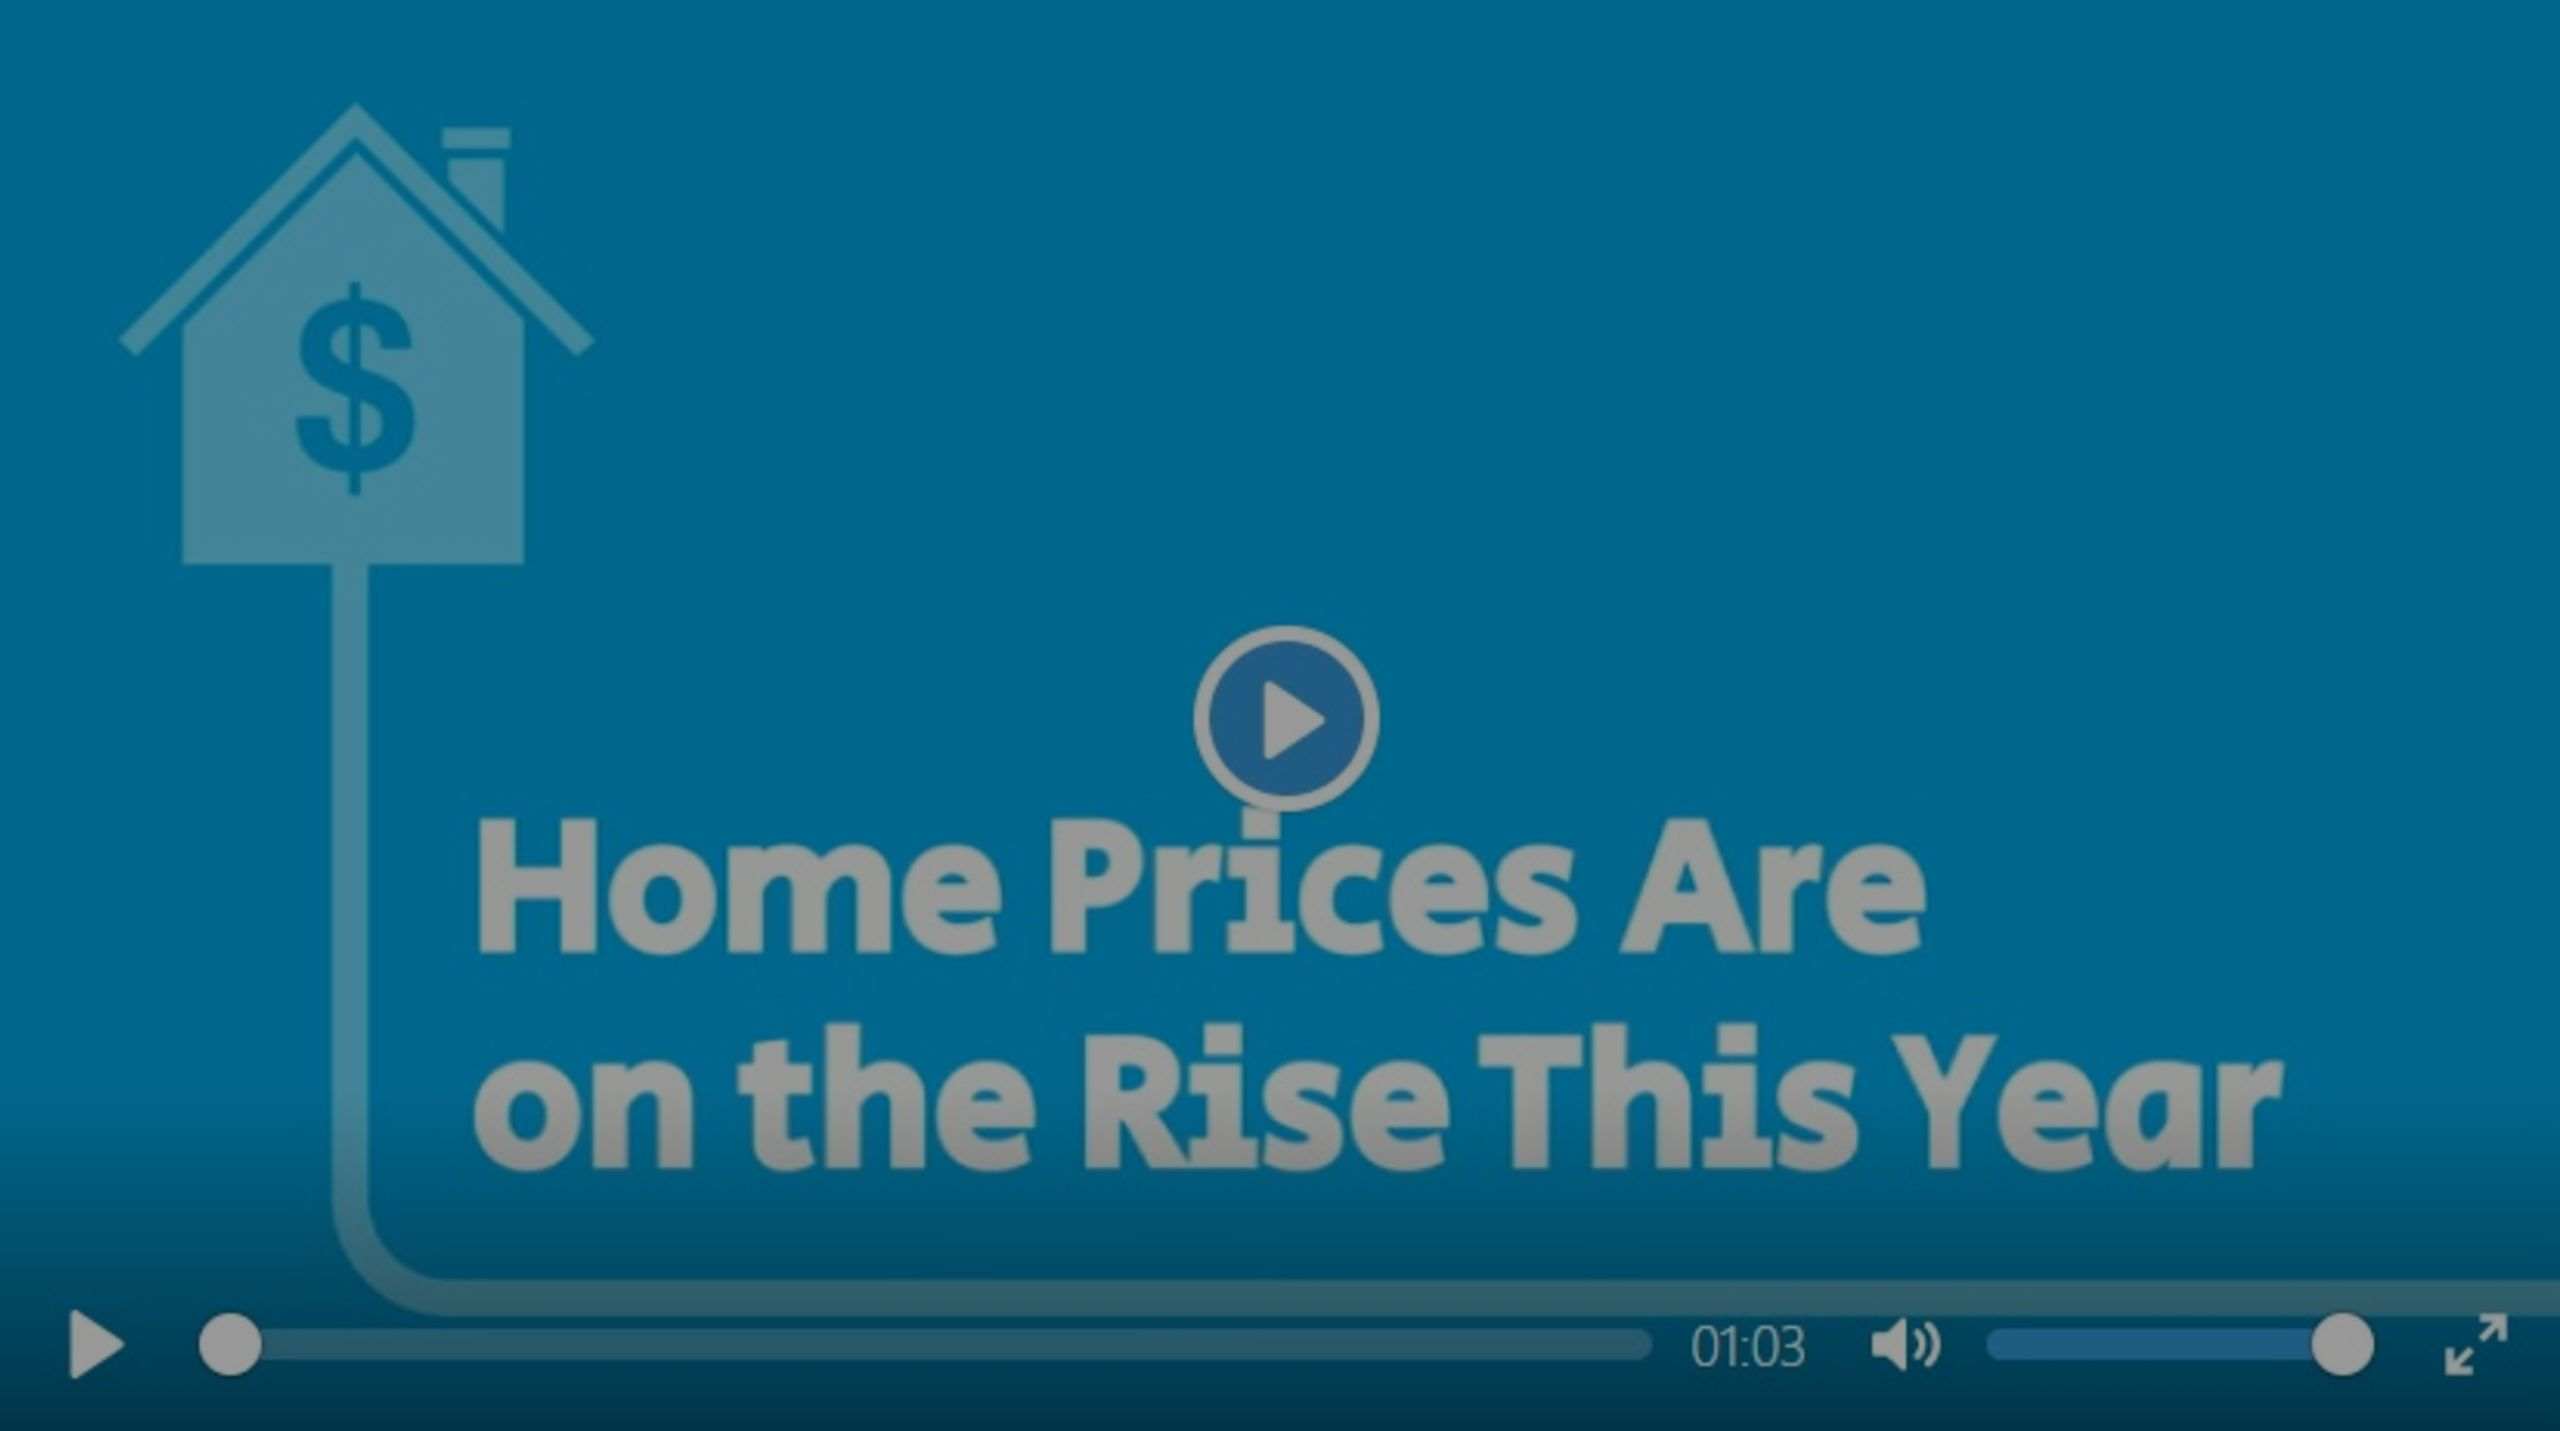 Home Prices Are on the Rise This Year